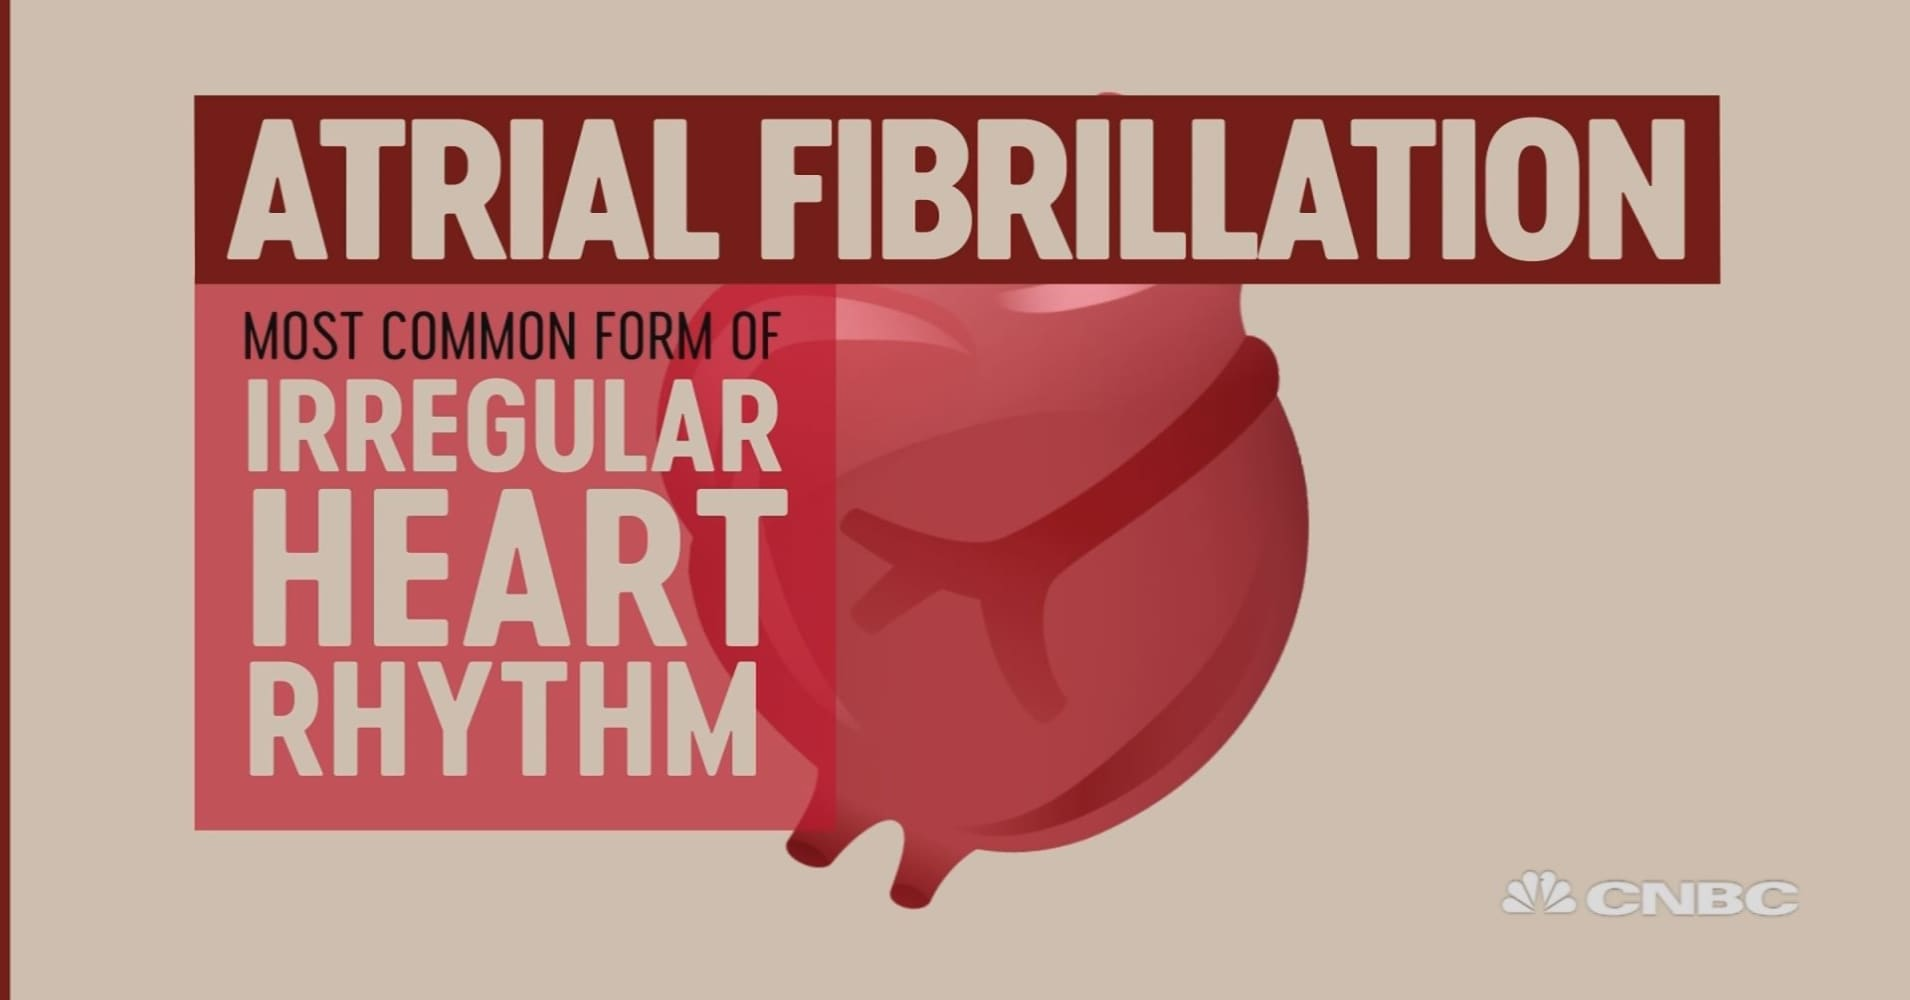 images What Its Like to Join an Atrial Fibrillation Clinical Trial